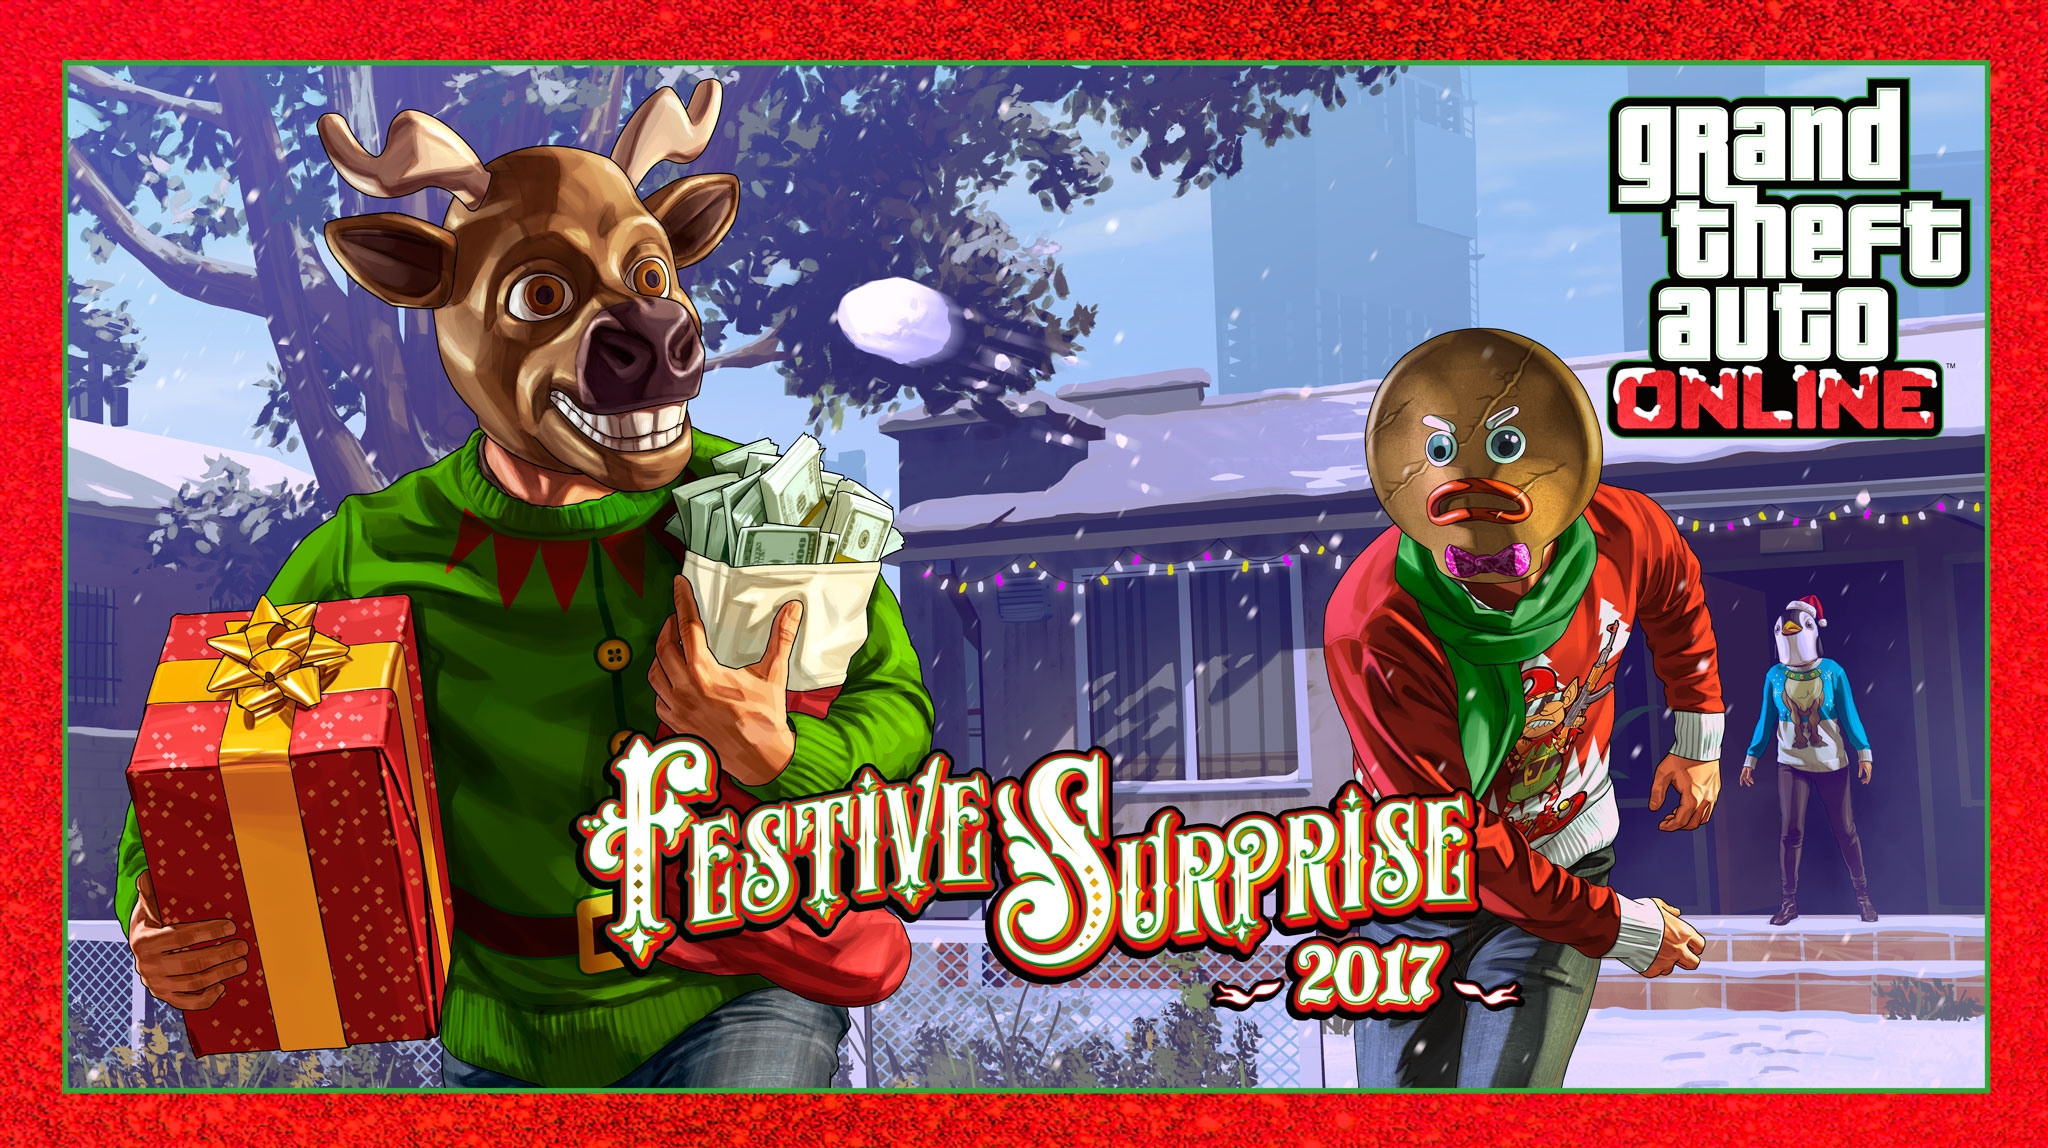 Festive Surprise 2017, Ubermacht Sentinel Classic and Occupy